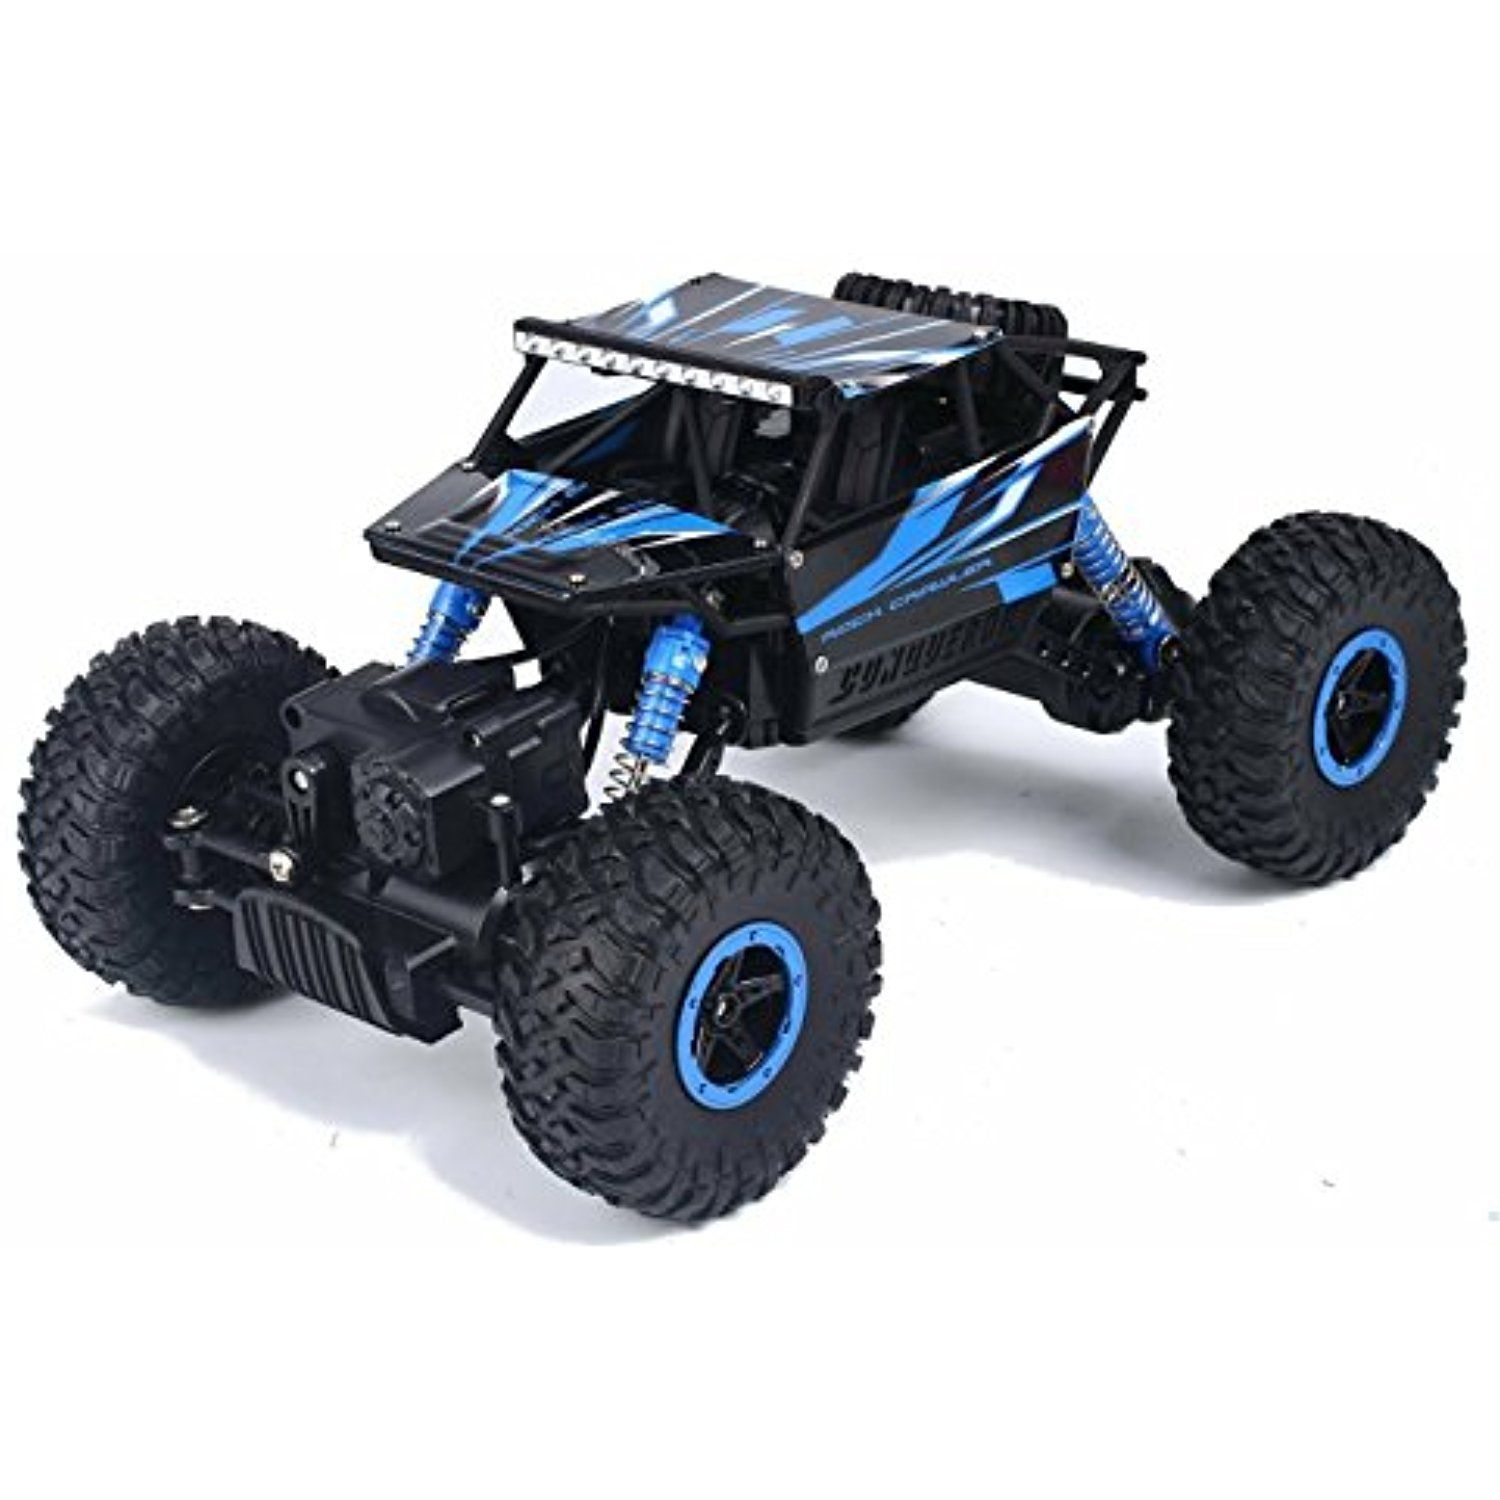 Aclook Rc Car Off Road Remote Control Car 4wd High Speed Vehicle Fast Race Truck 2 4ghz Electric Buggy Remote Control Trucks Rc Car Remote Remote Control Cars